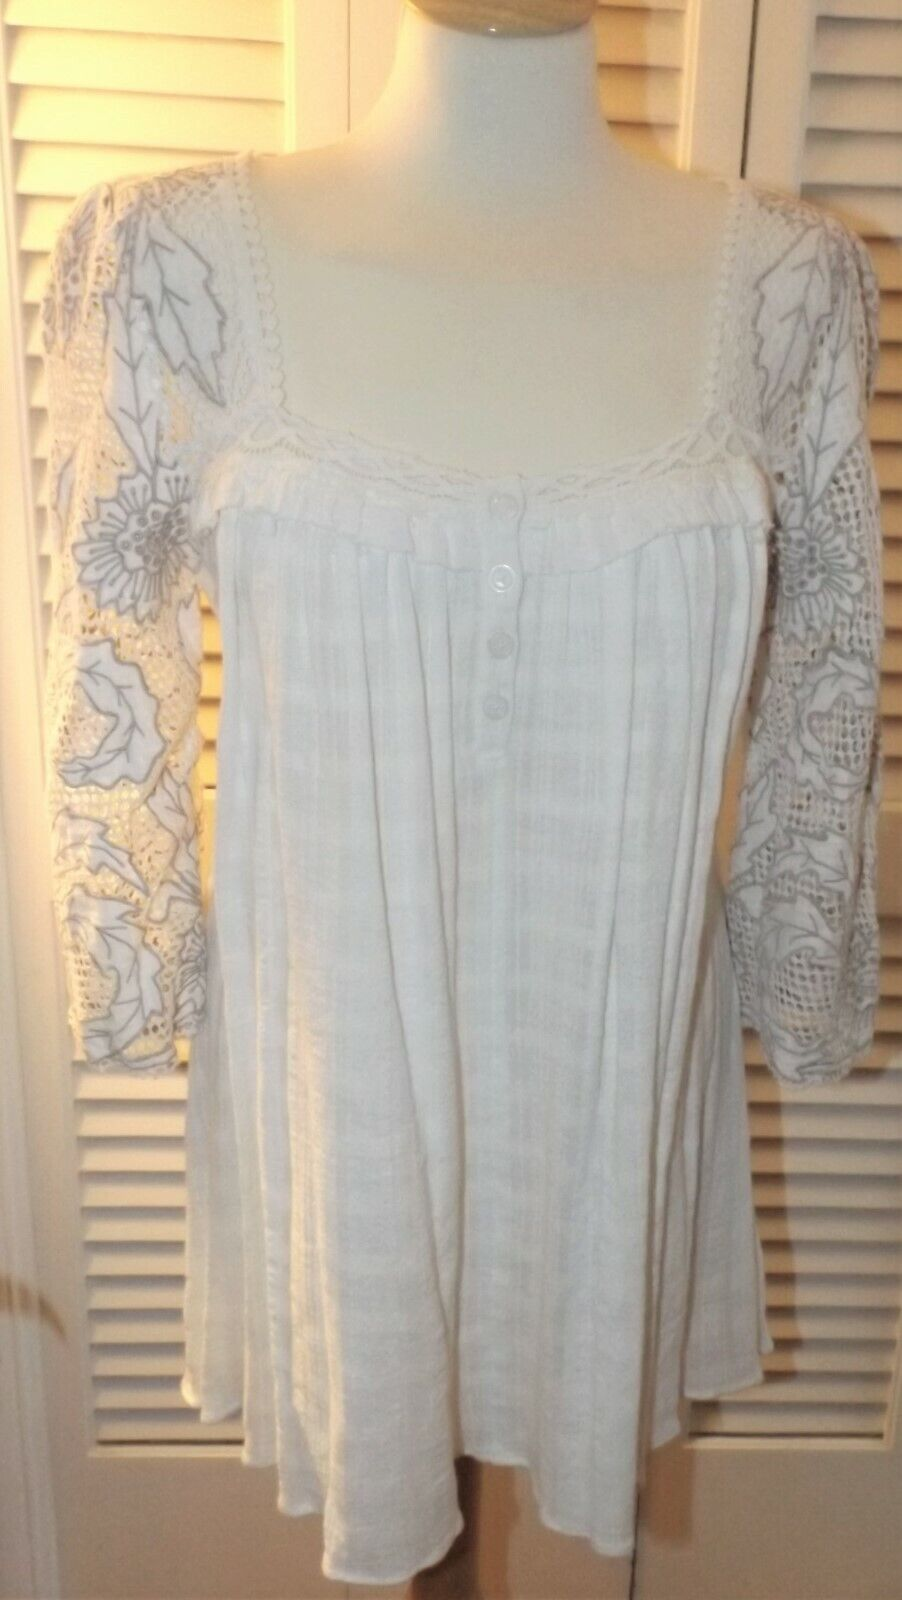 NWT Free People Ivory Floral Embrodered Shirt Top M Womens